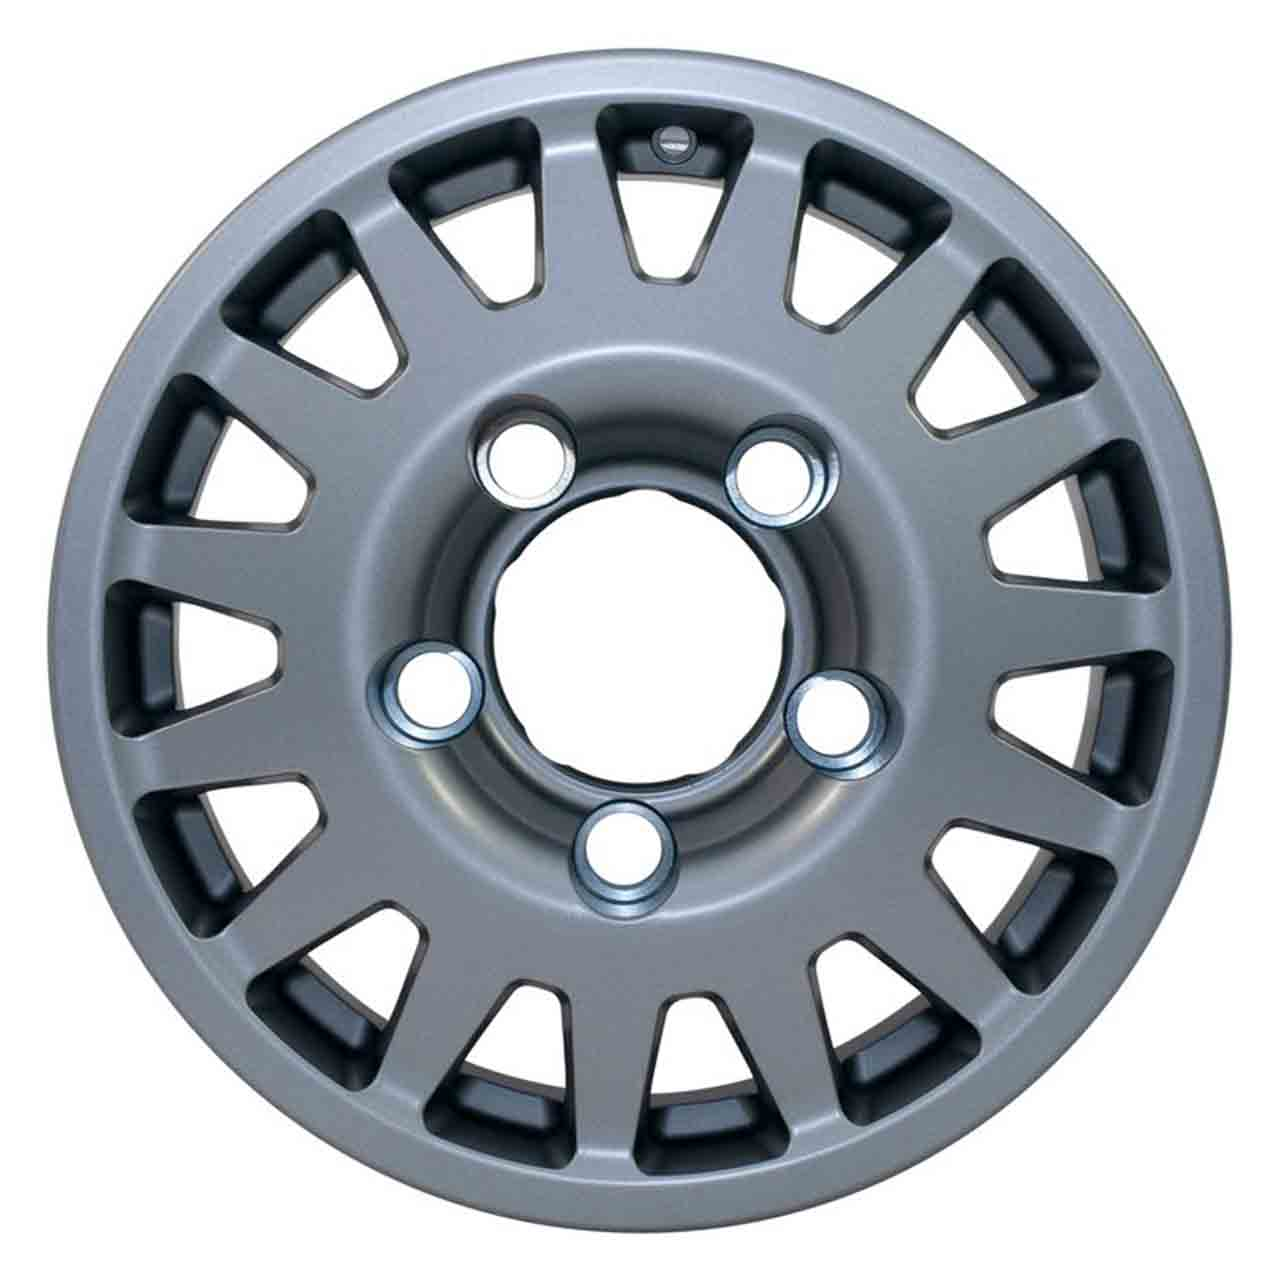 Defender Discovery 1 Range Rover Classic Blindo 16 X 7 Ruote Antracite Maxtrac GR2-05781